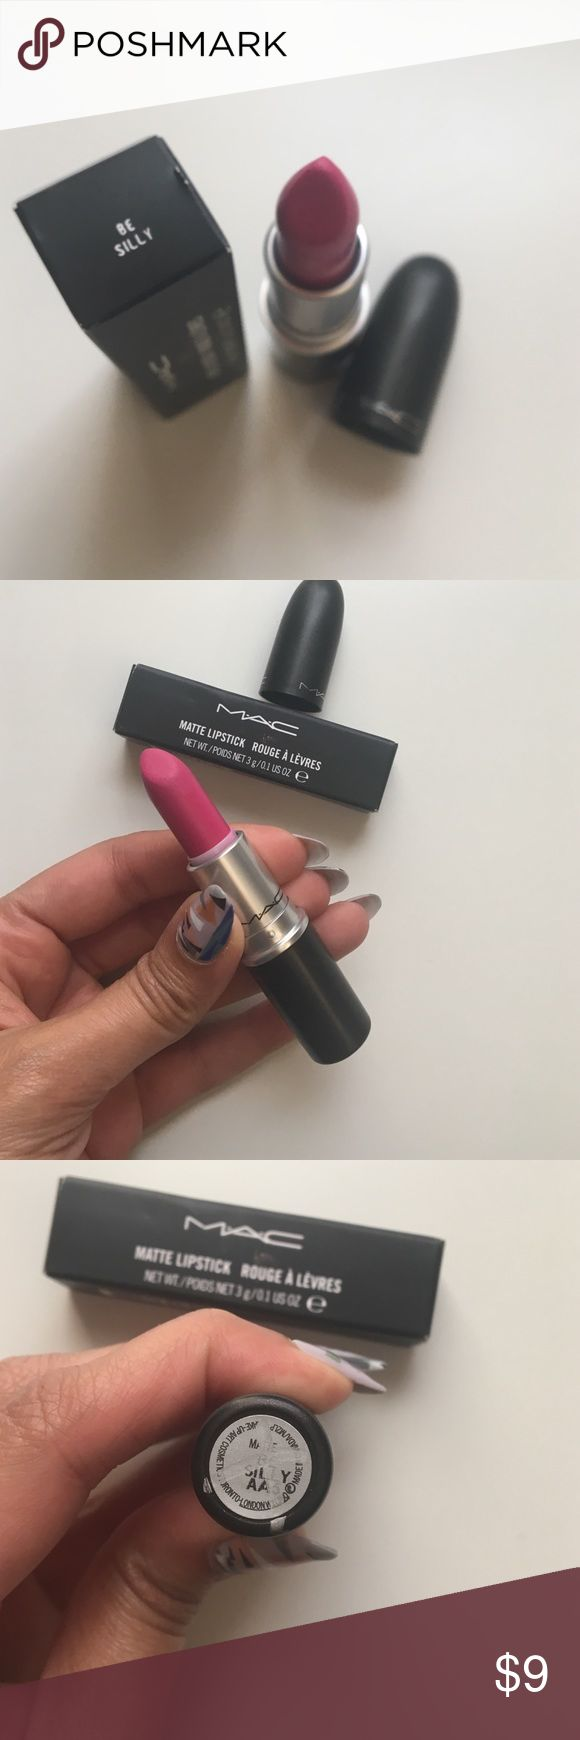 MAC Matte Lipstick in Be Silly MAC Matte Lipstick in Be Silly. Purchased at MAC sample sale. Used once! Comes with original box.   My Poshmark closet offers 10% off 2+ items! MAC Cosmetics Makeup Lipstick